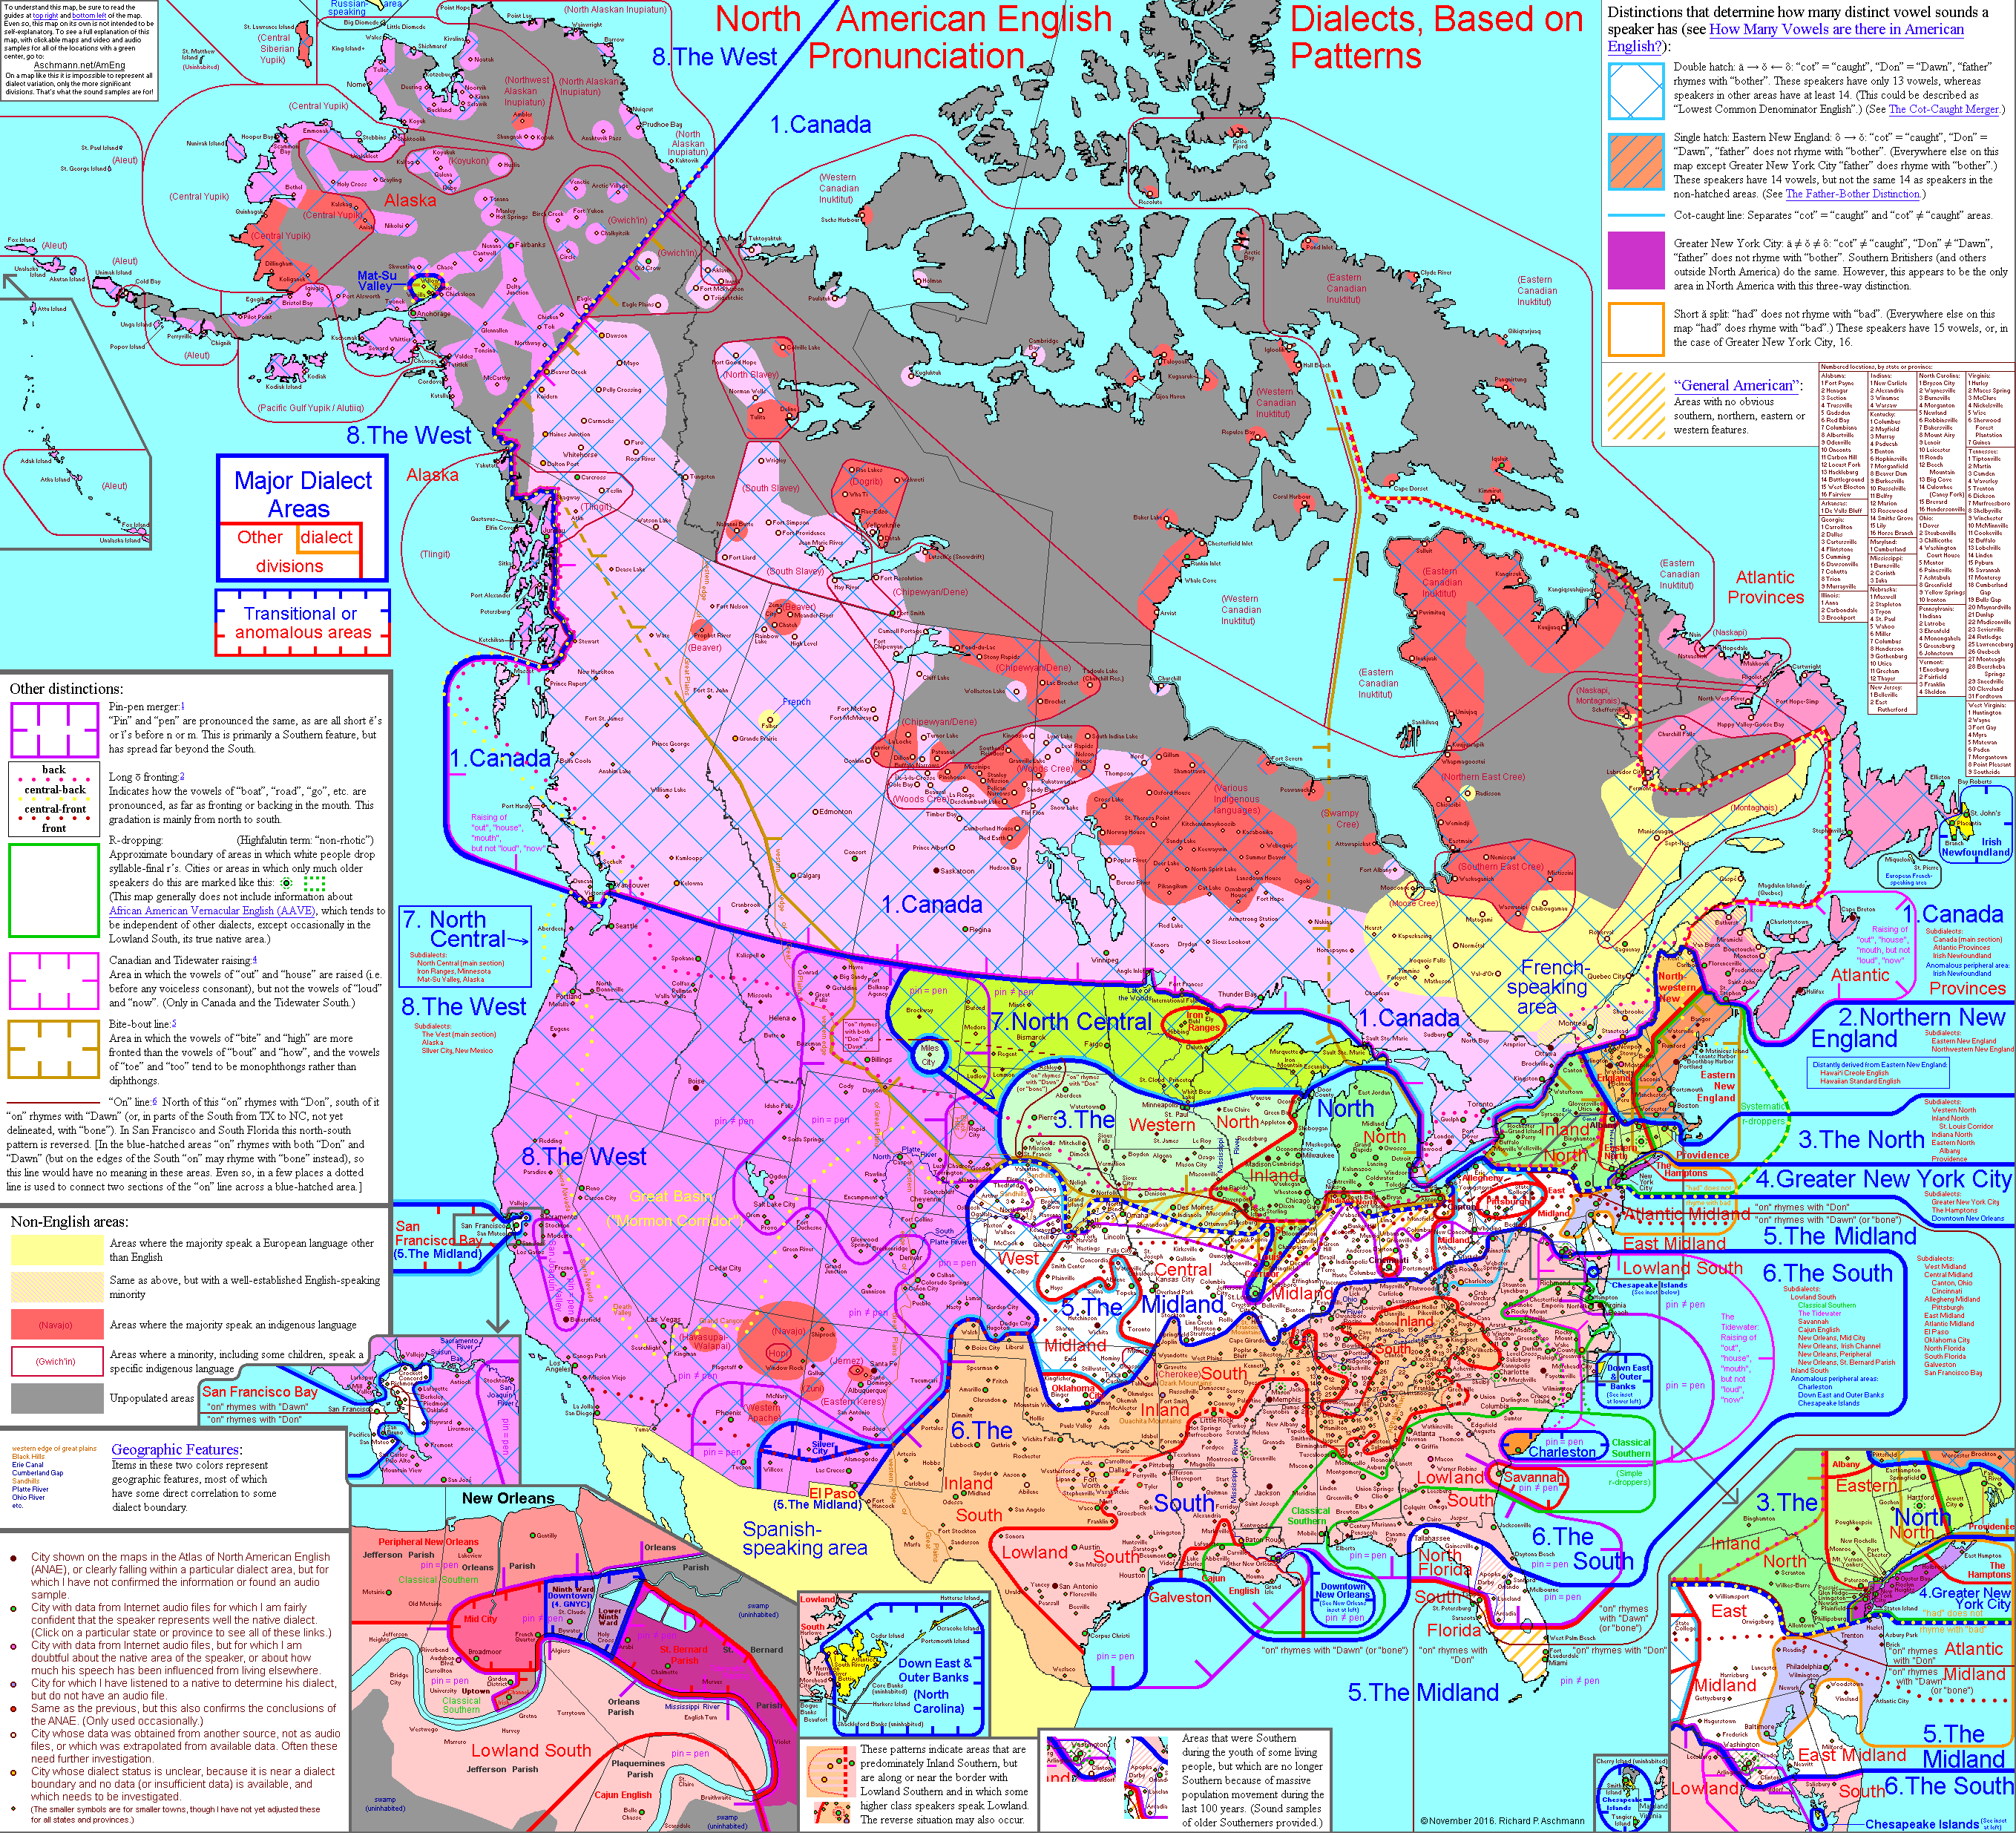 north-american-english-dialects